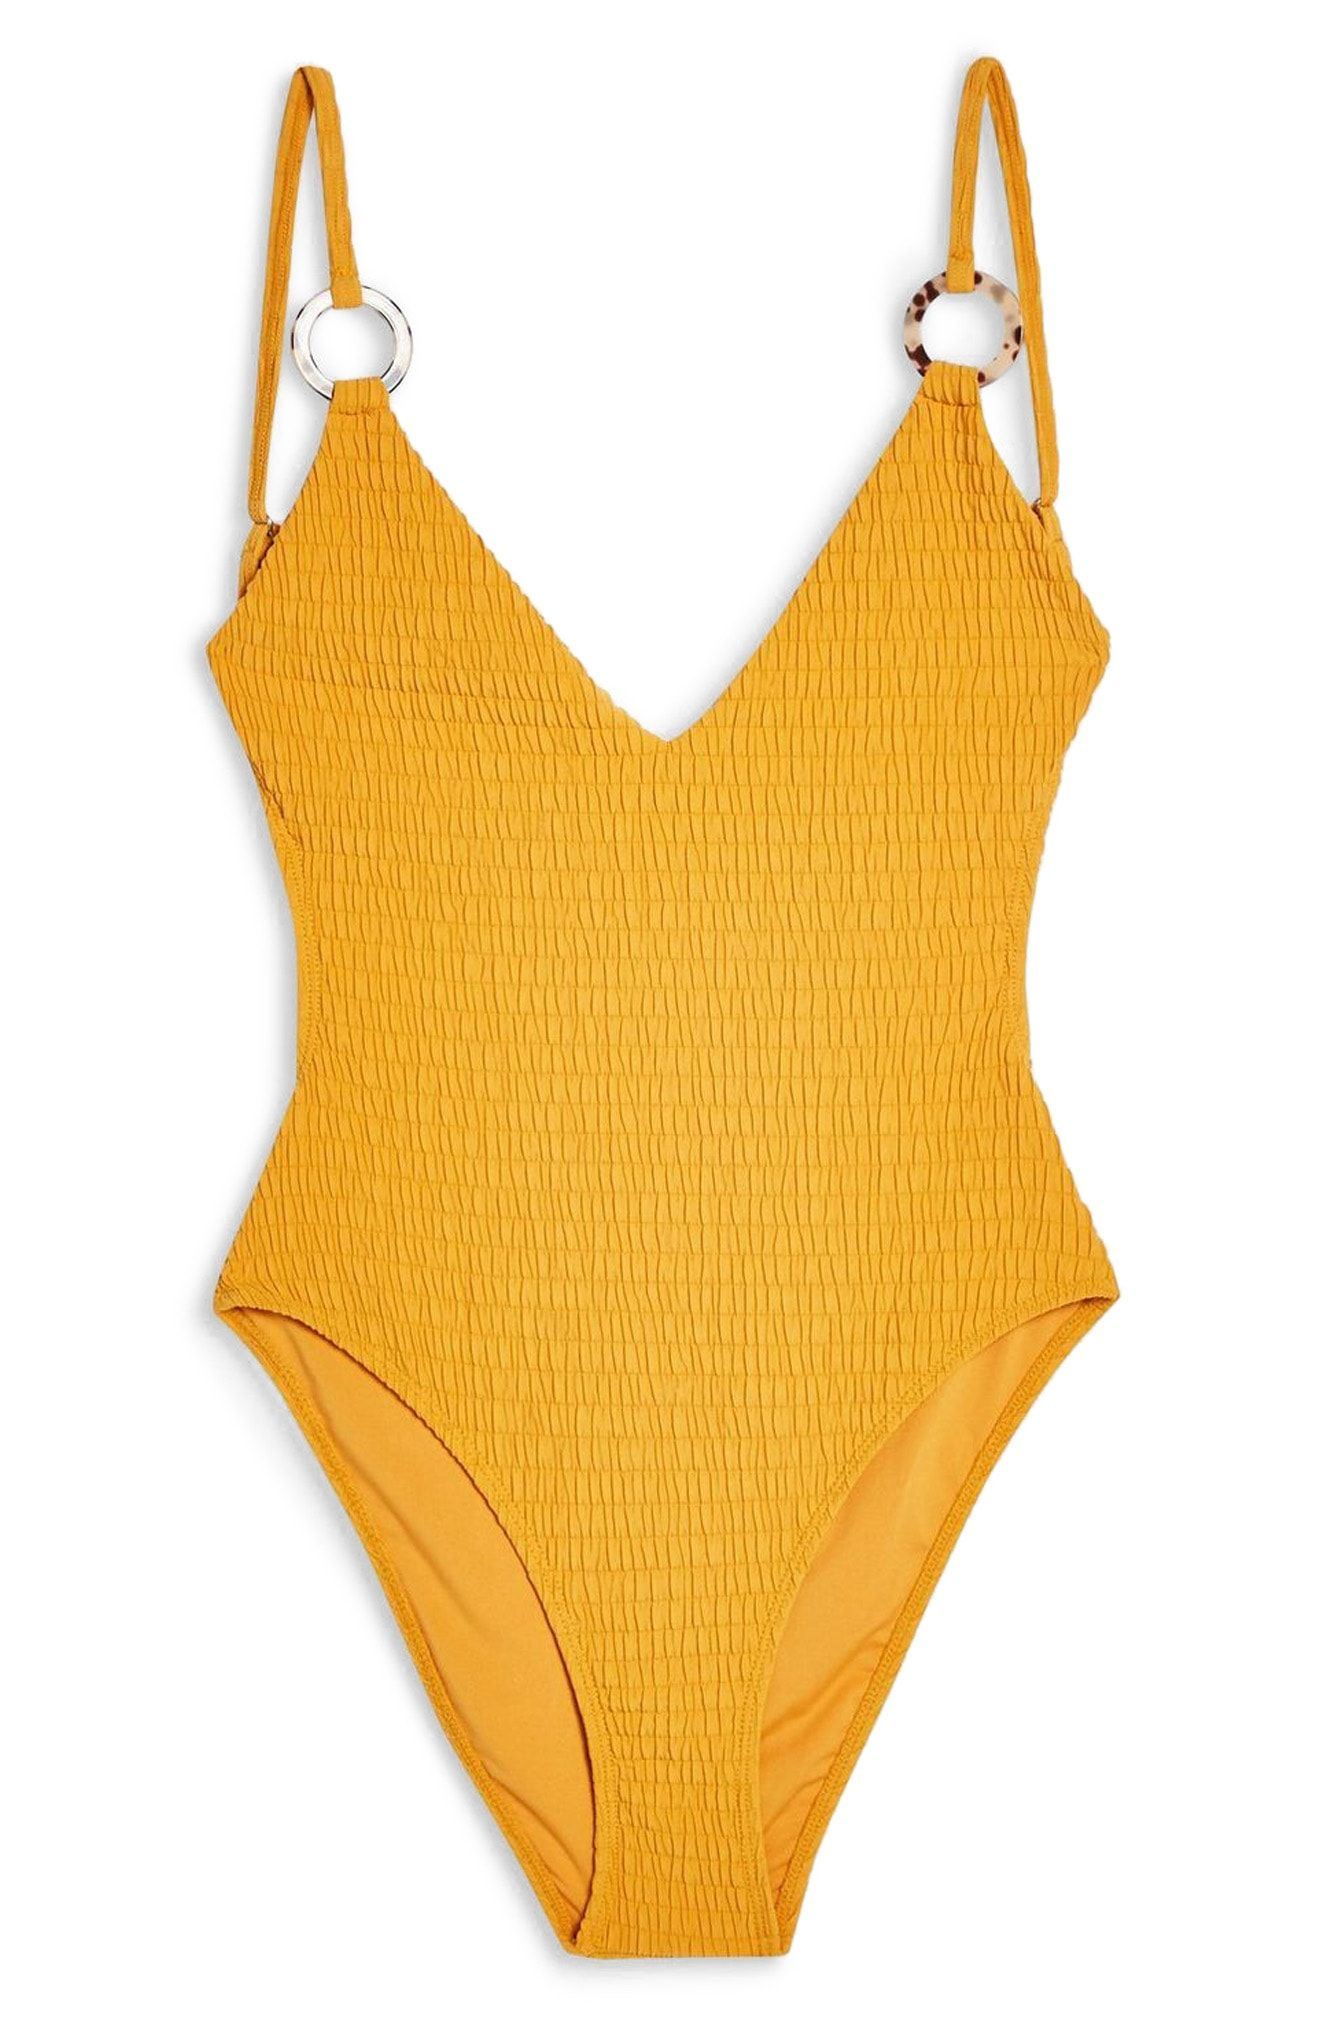 13771b01e9c 22 Best One-Piece Swimsuits for Summer 2019 - Sexy One-Piece Bathing Suits  and Swimwear